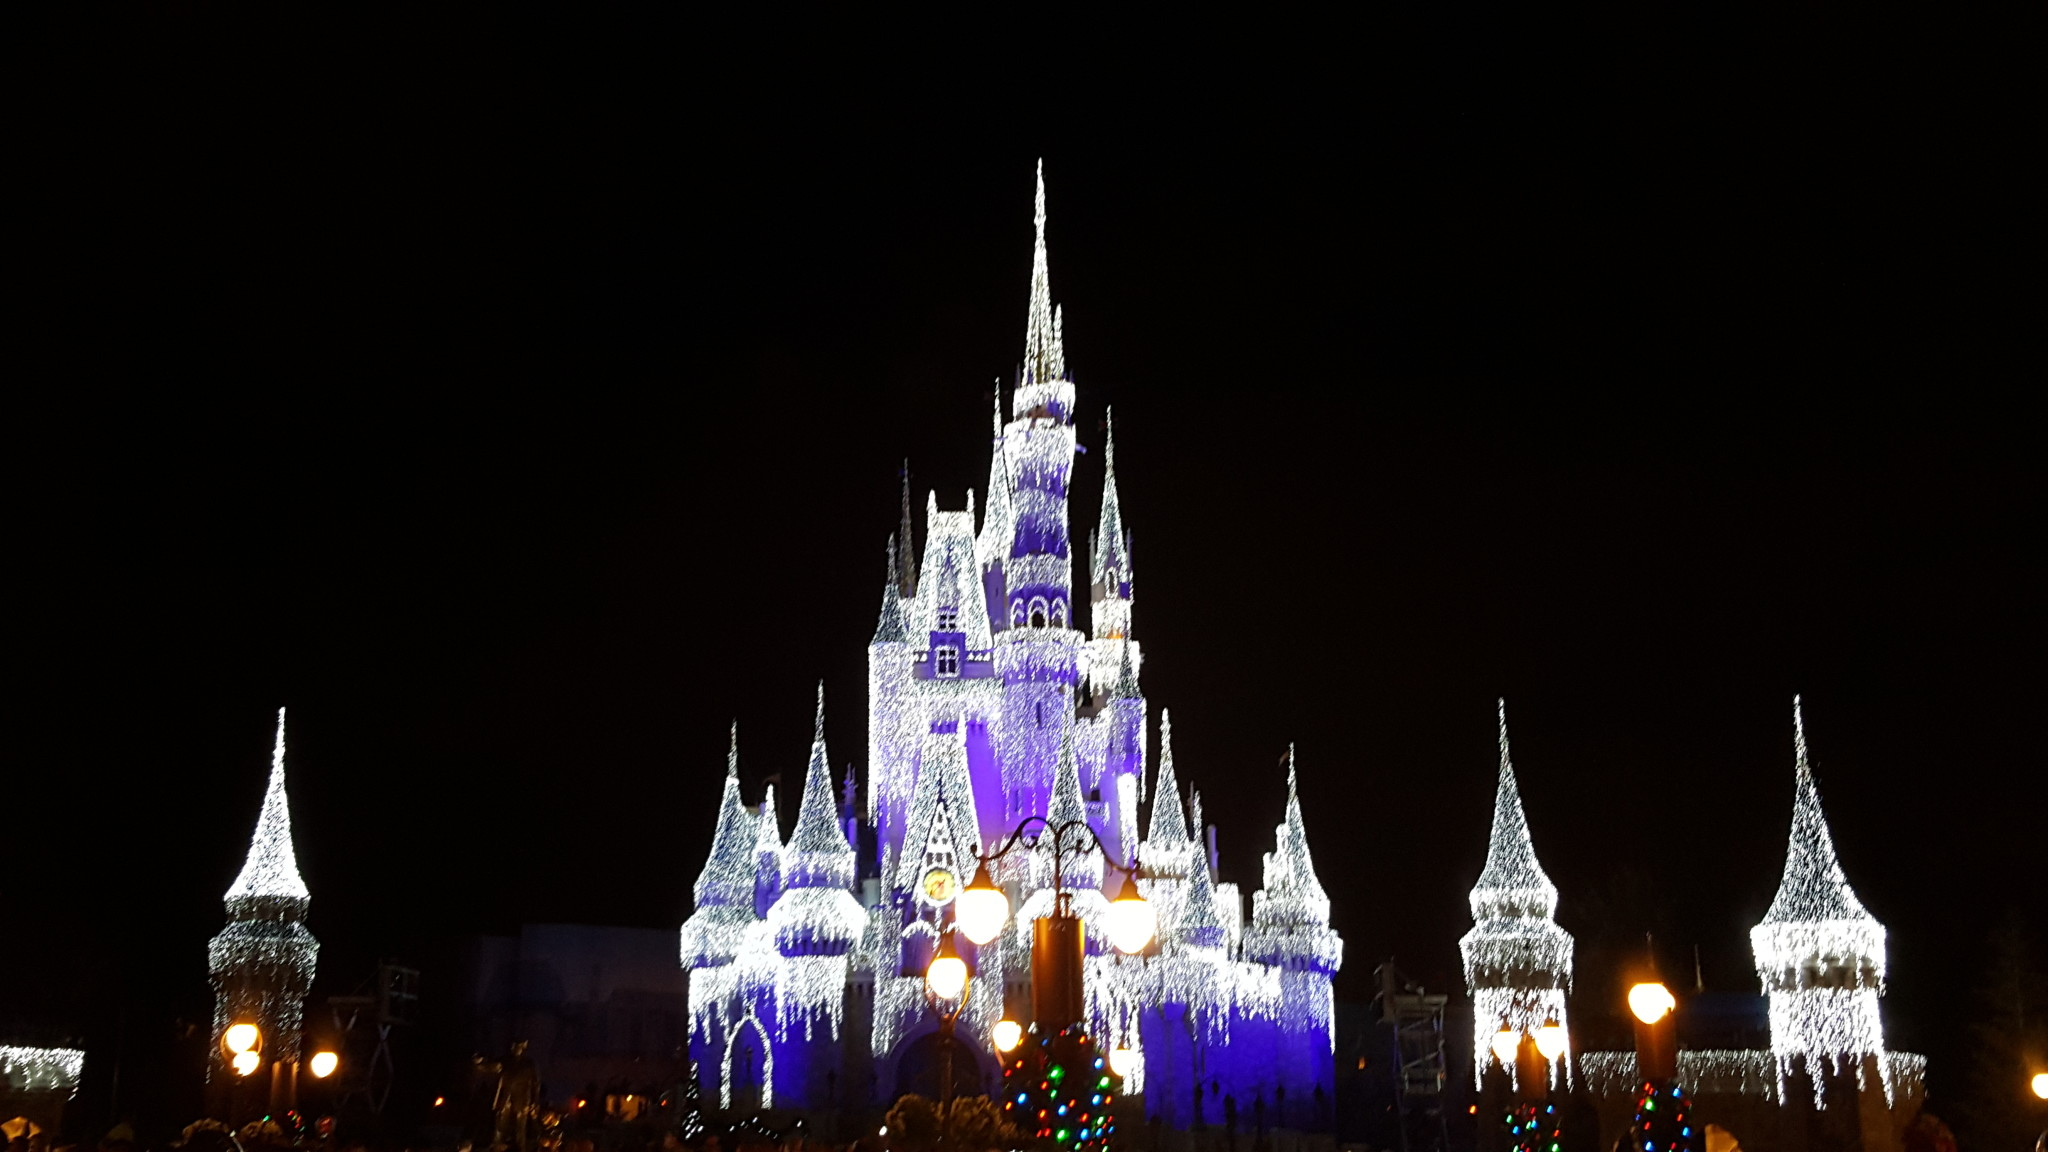 mickeys very merry christmas party returns for 21 magic filled nights in 2016 - Disney Christmas Party 2015